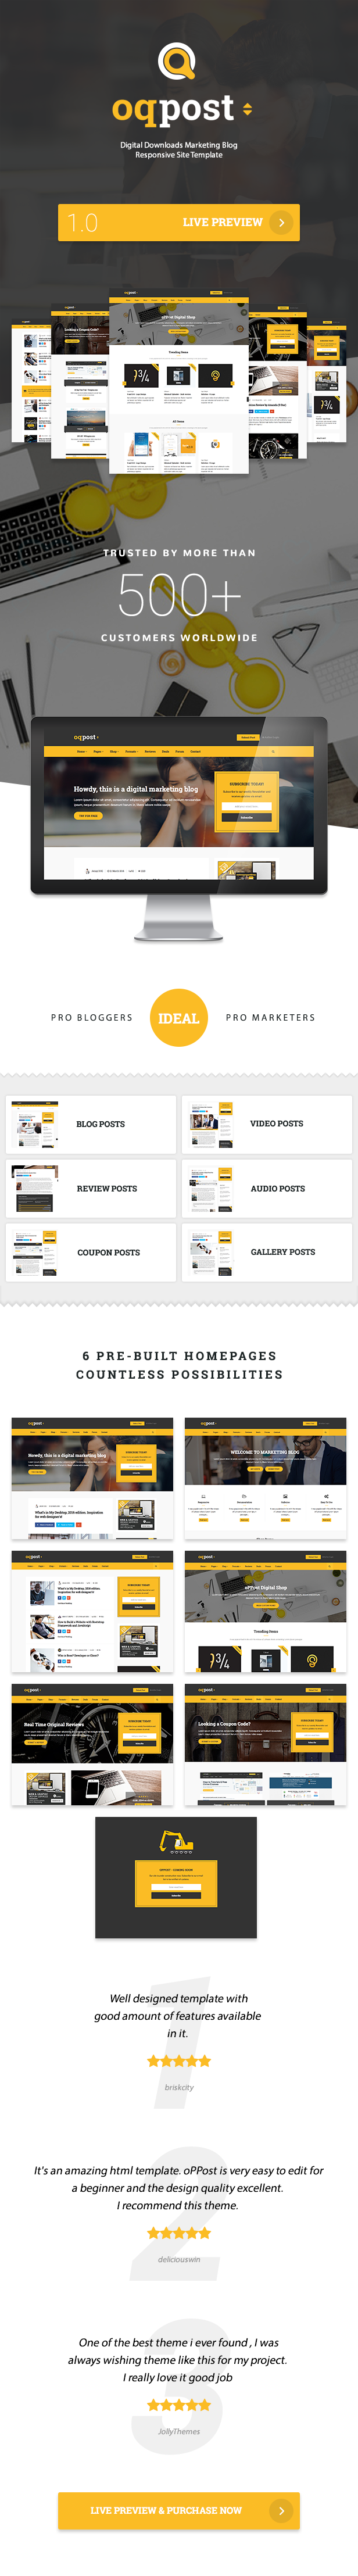 oPPost | Digital Downloads Marketing Blog Responsive WordPress Theme